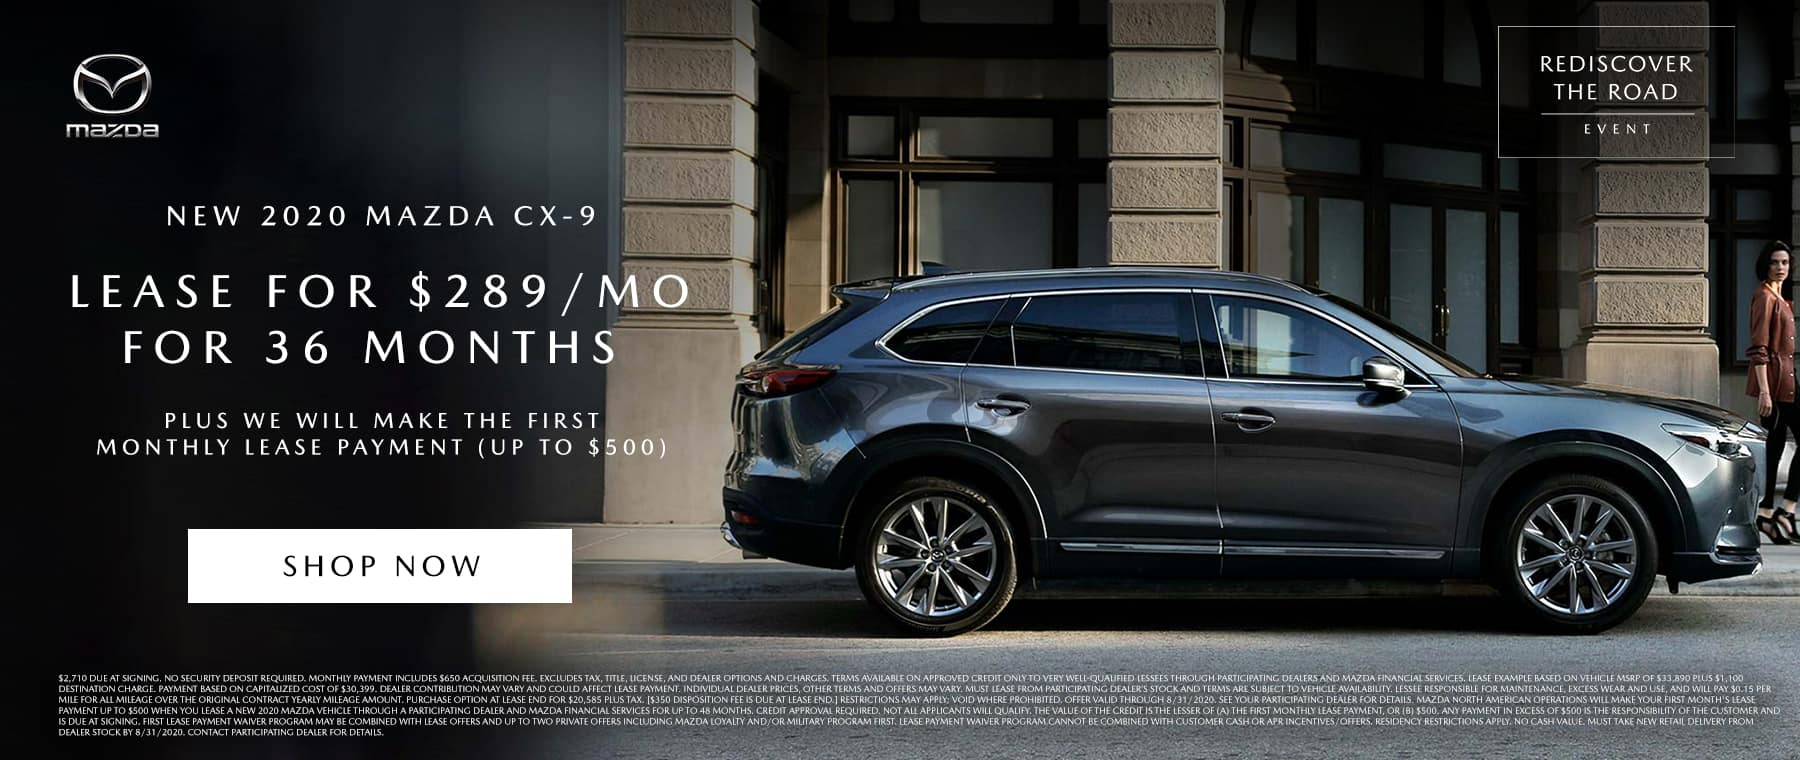 Mazda CX9 Lease August